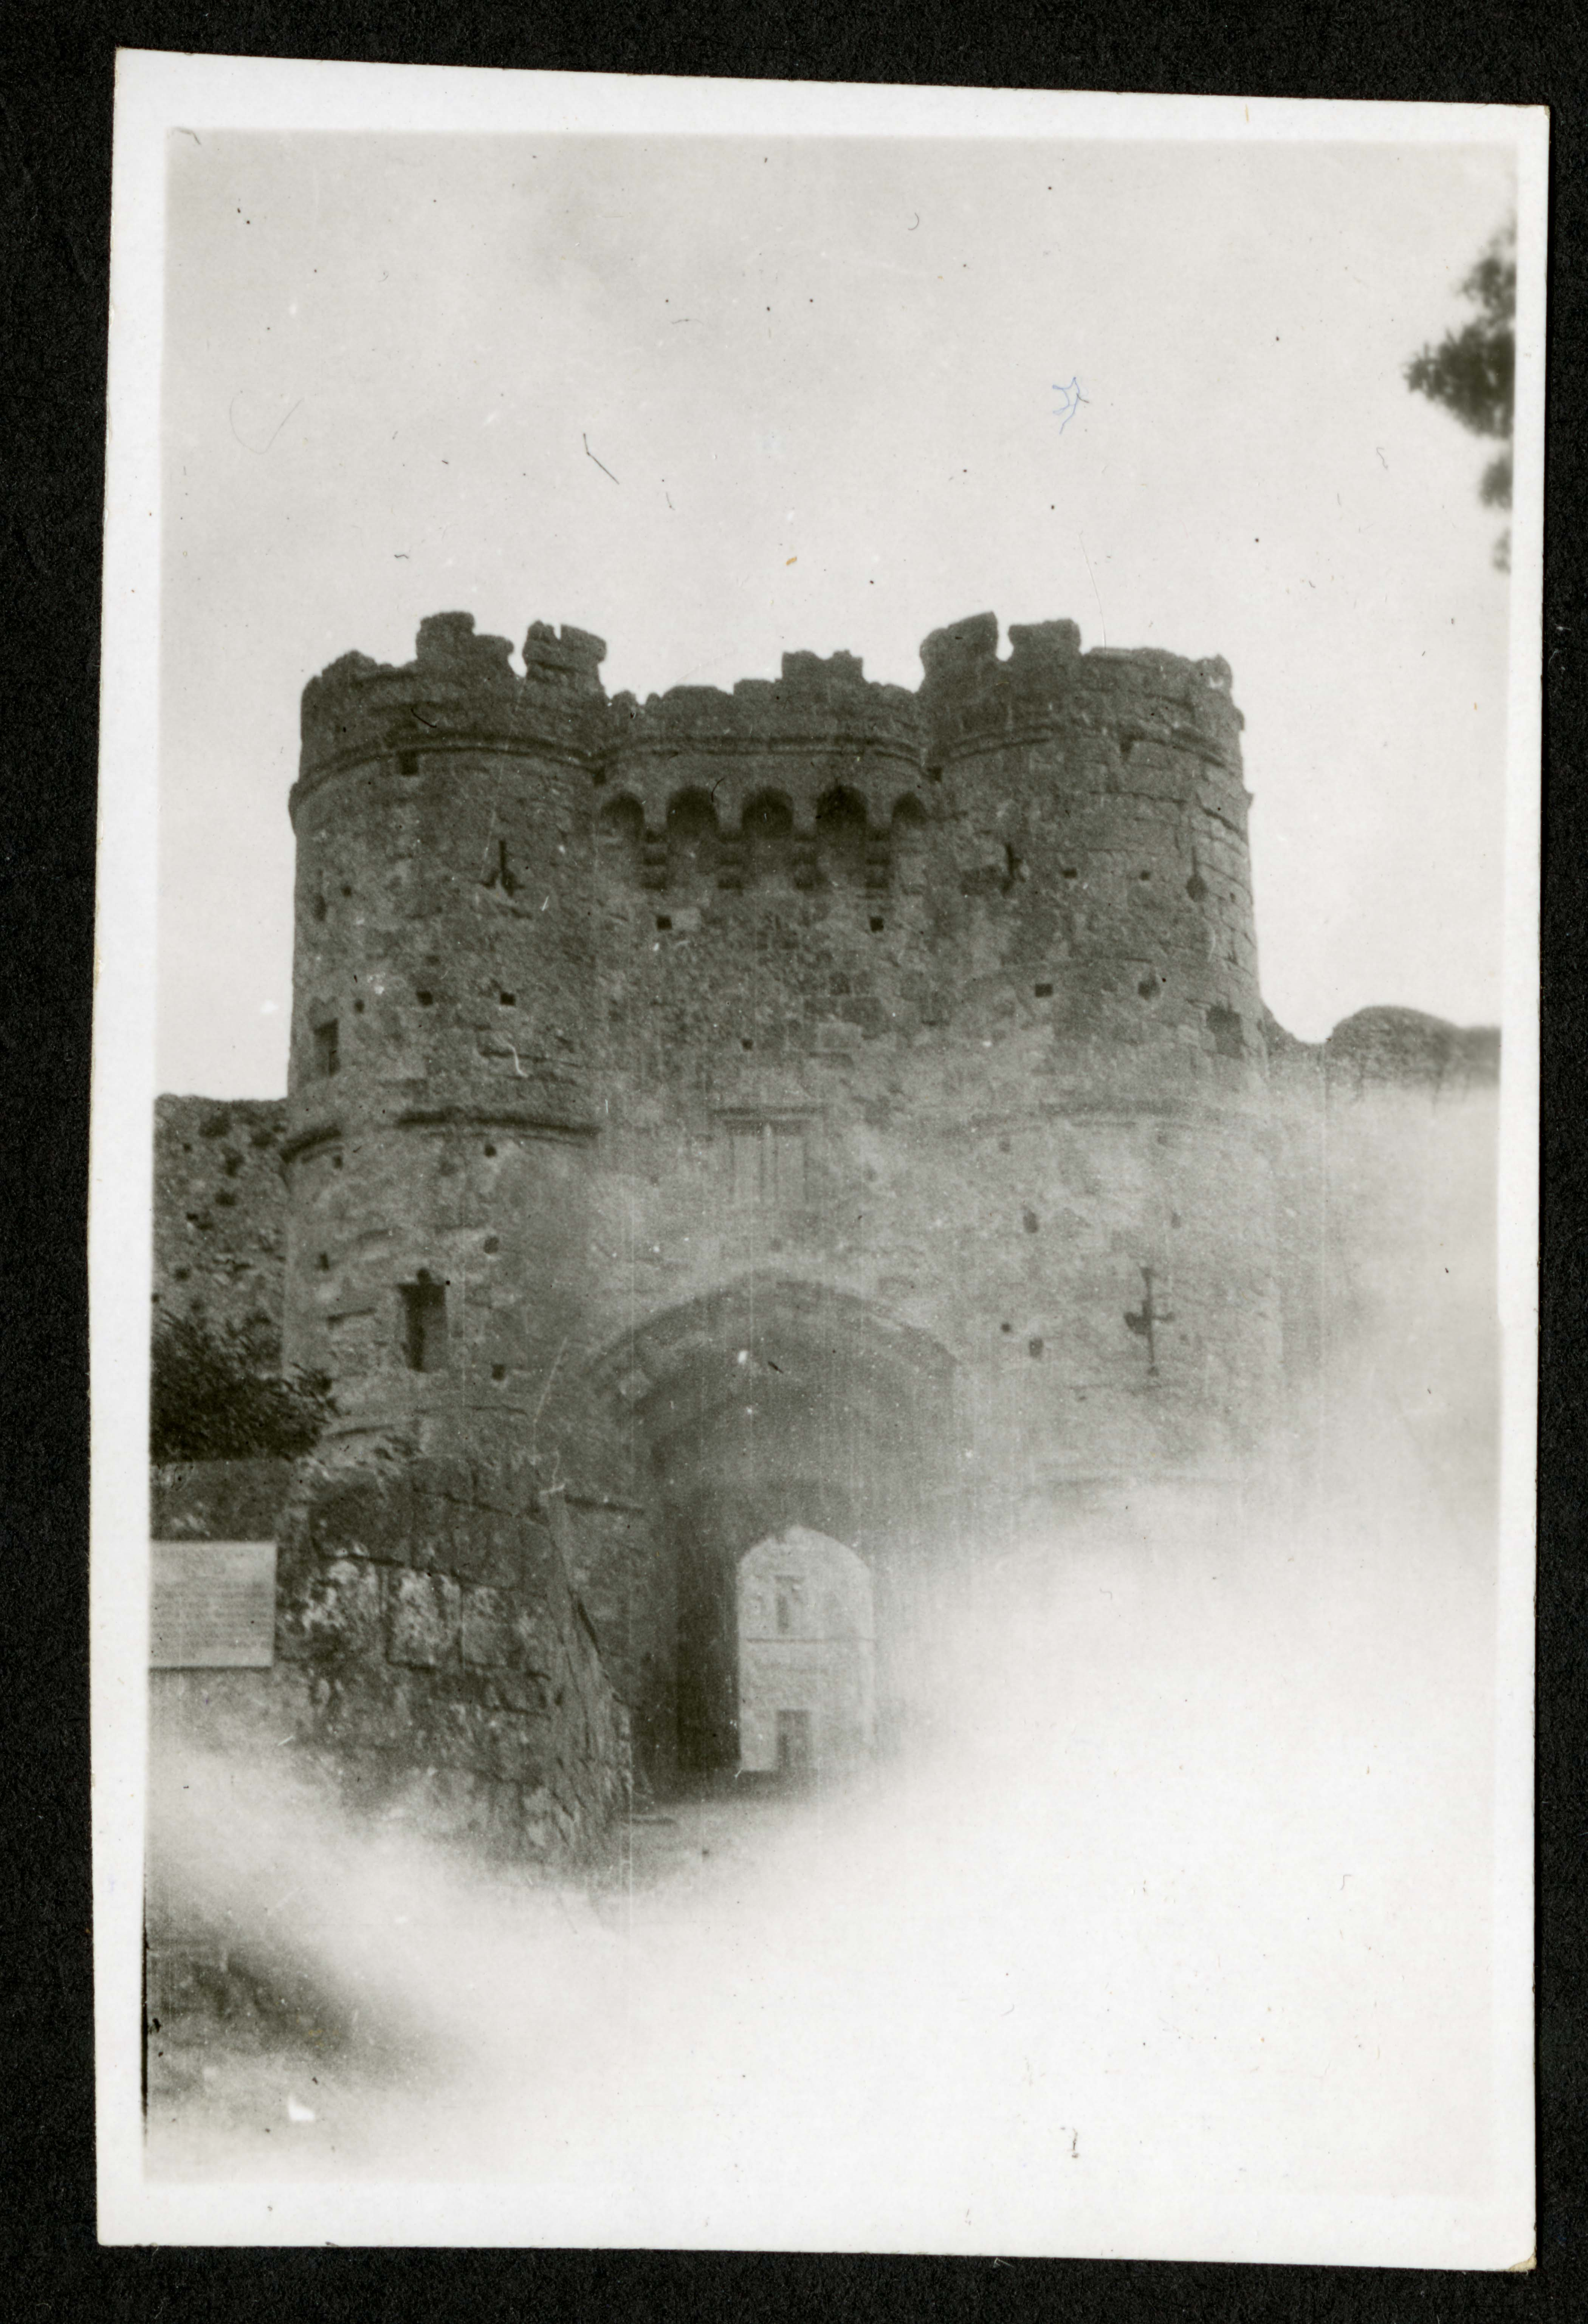 Entrance to castle keep?, Record Unit 7091: Science Service, Records, circa 1910-1963, Smithsonian Institution Archives, image no. SIA2015-003203.